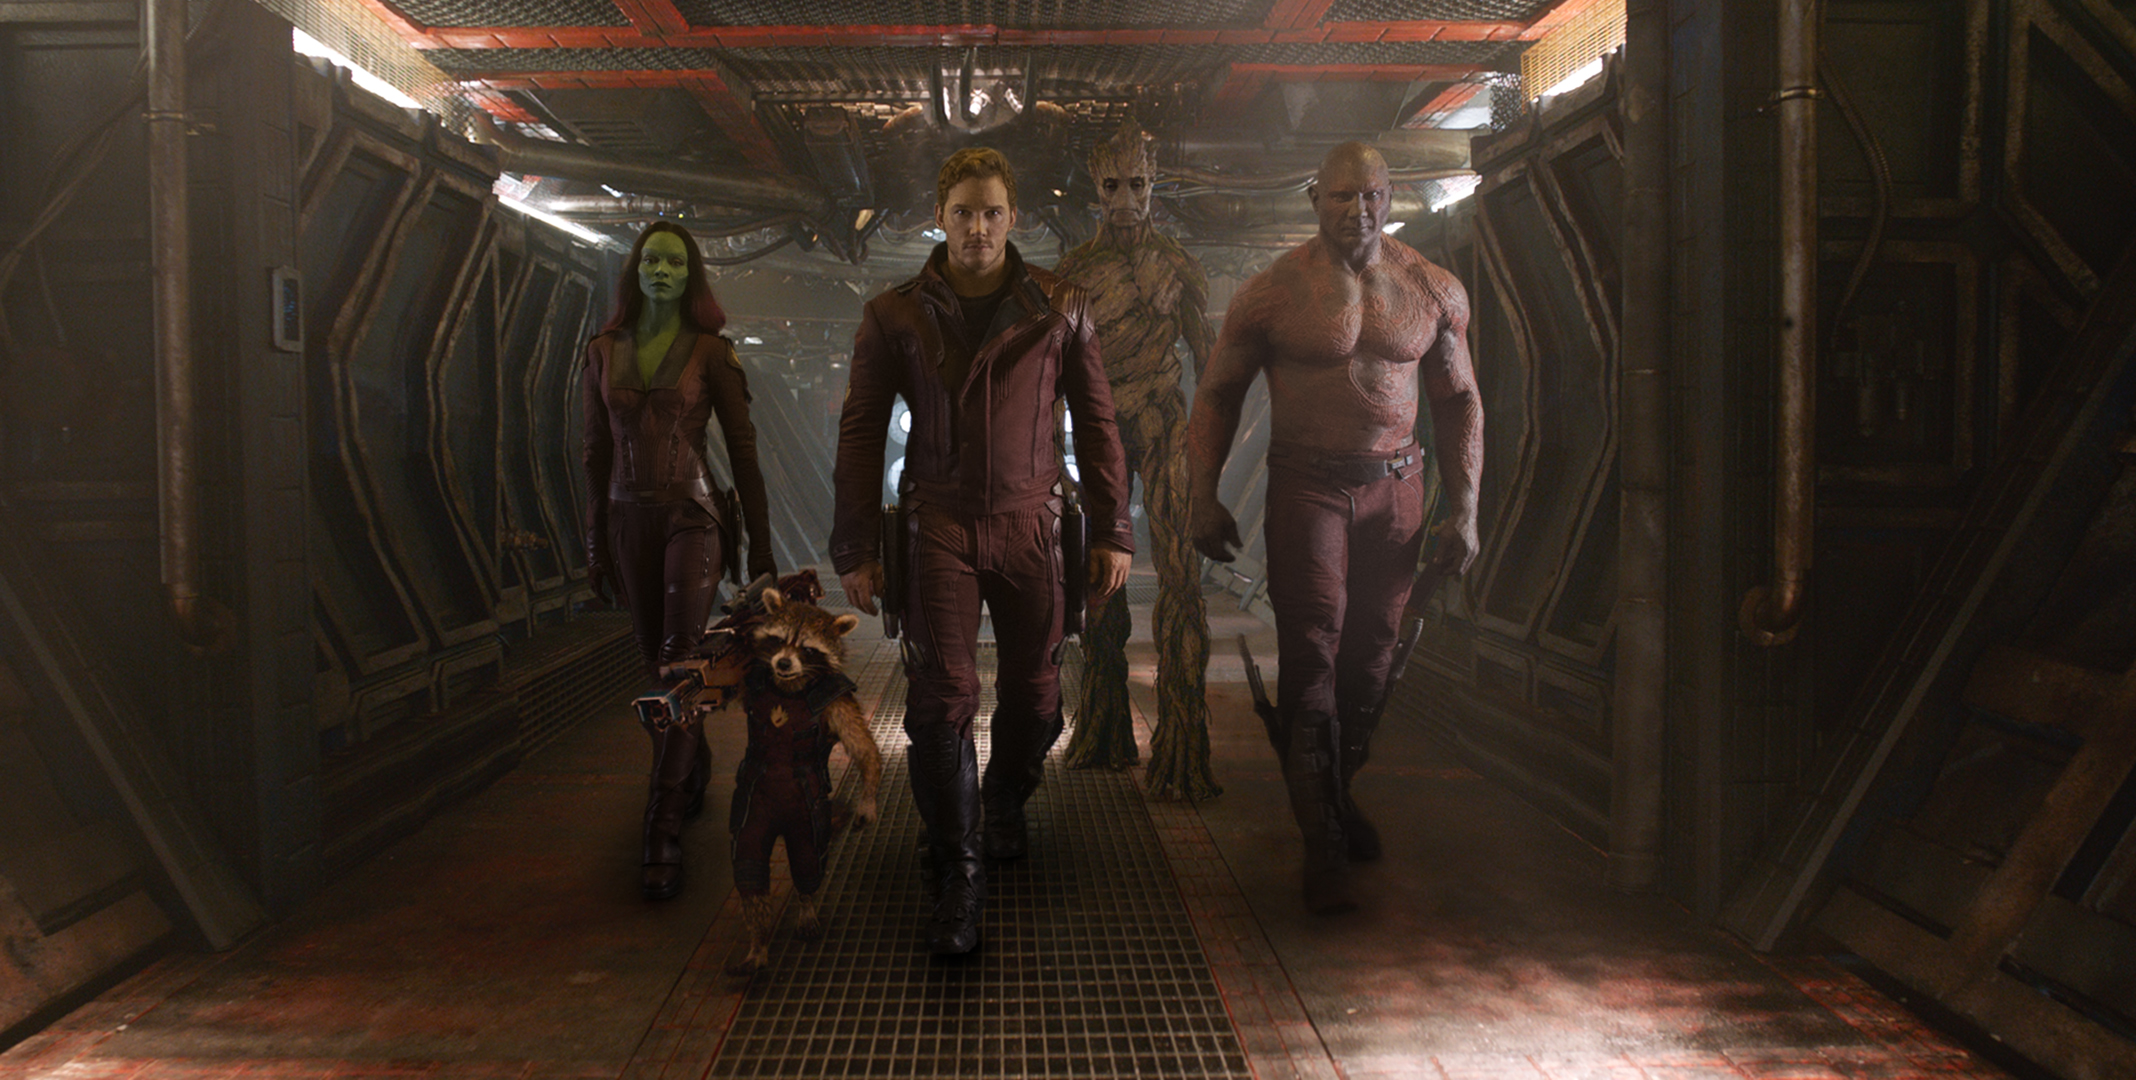 6 reasons we can't wait to see Guardians of the Galaxy after watching the new trailer